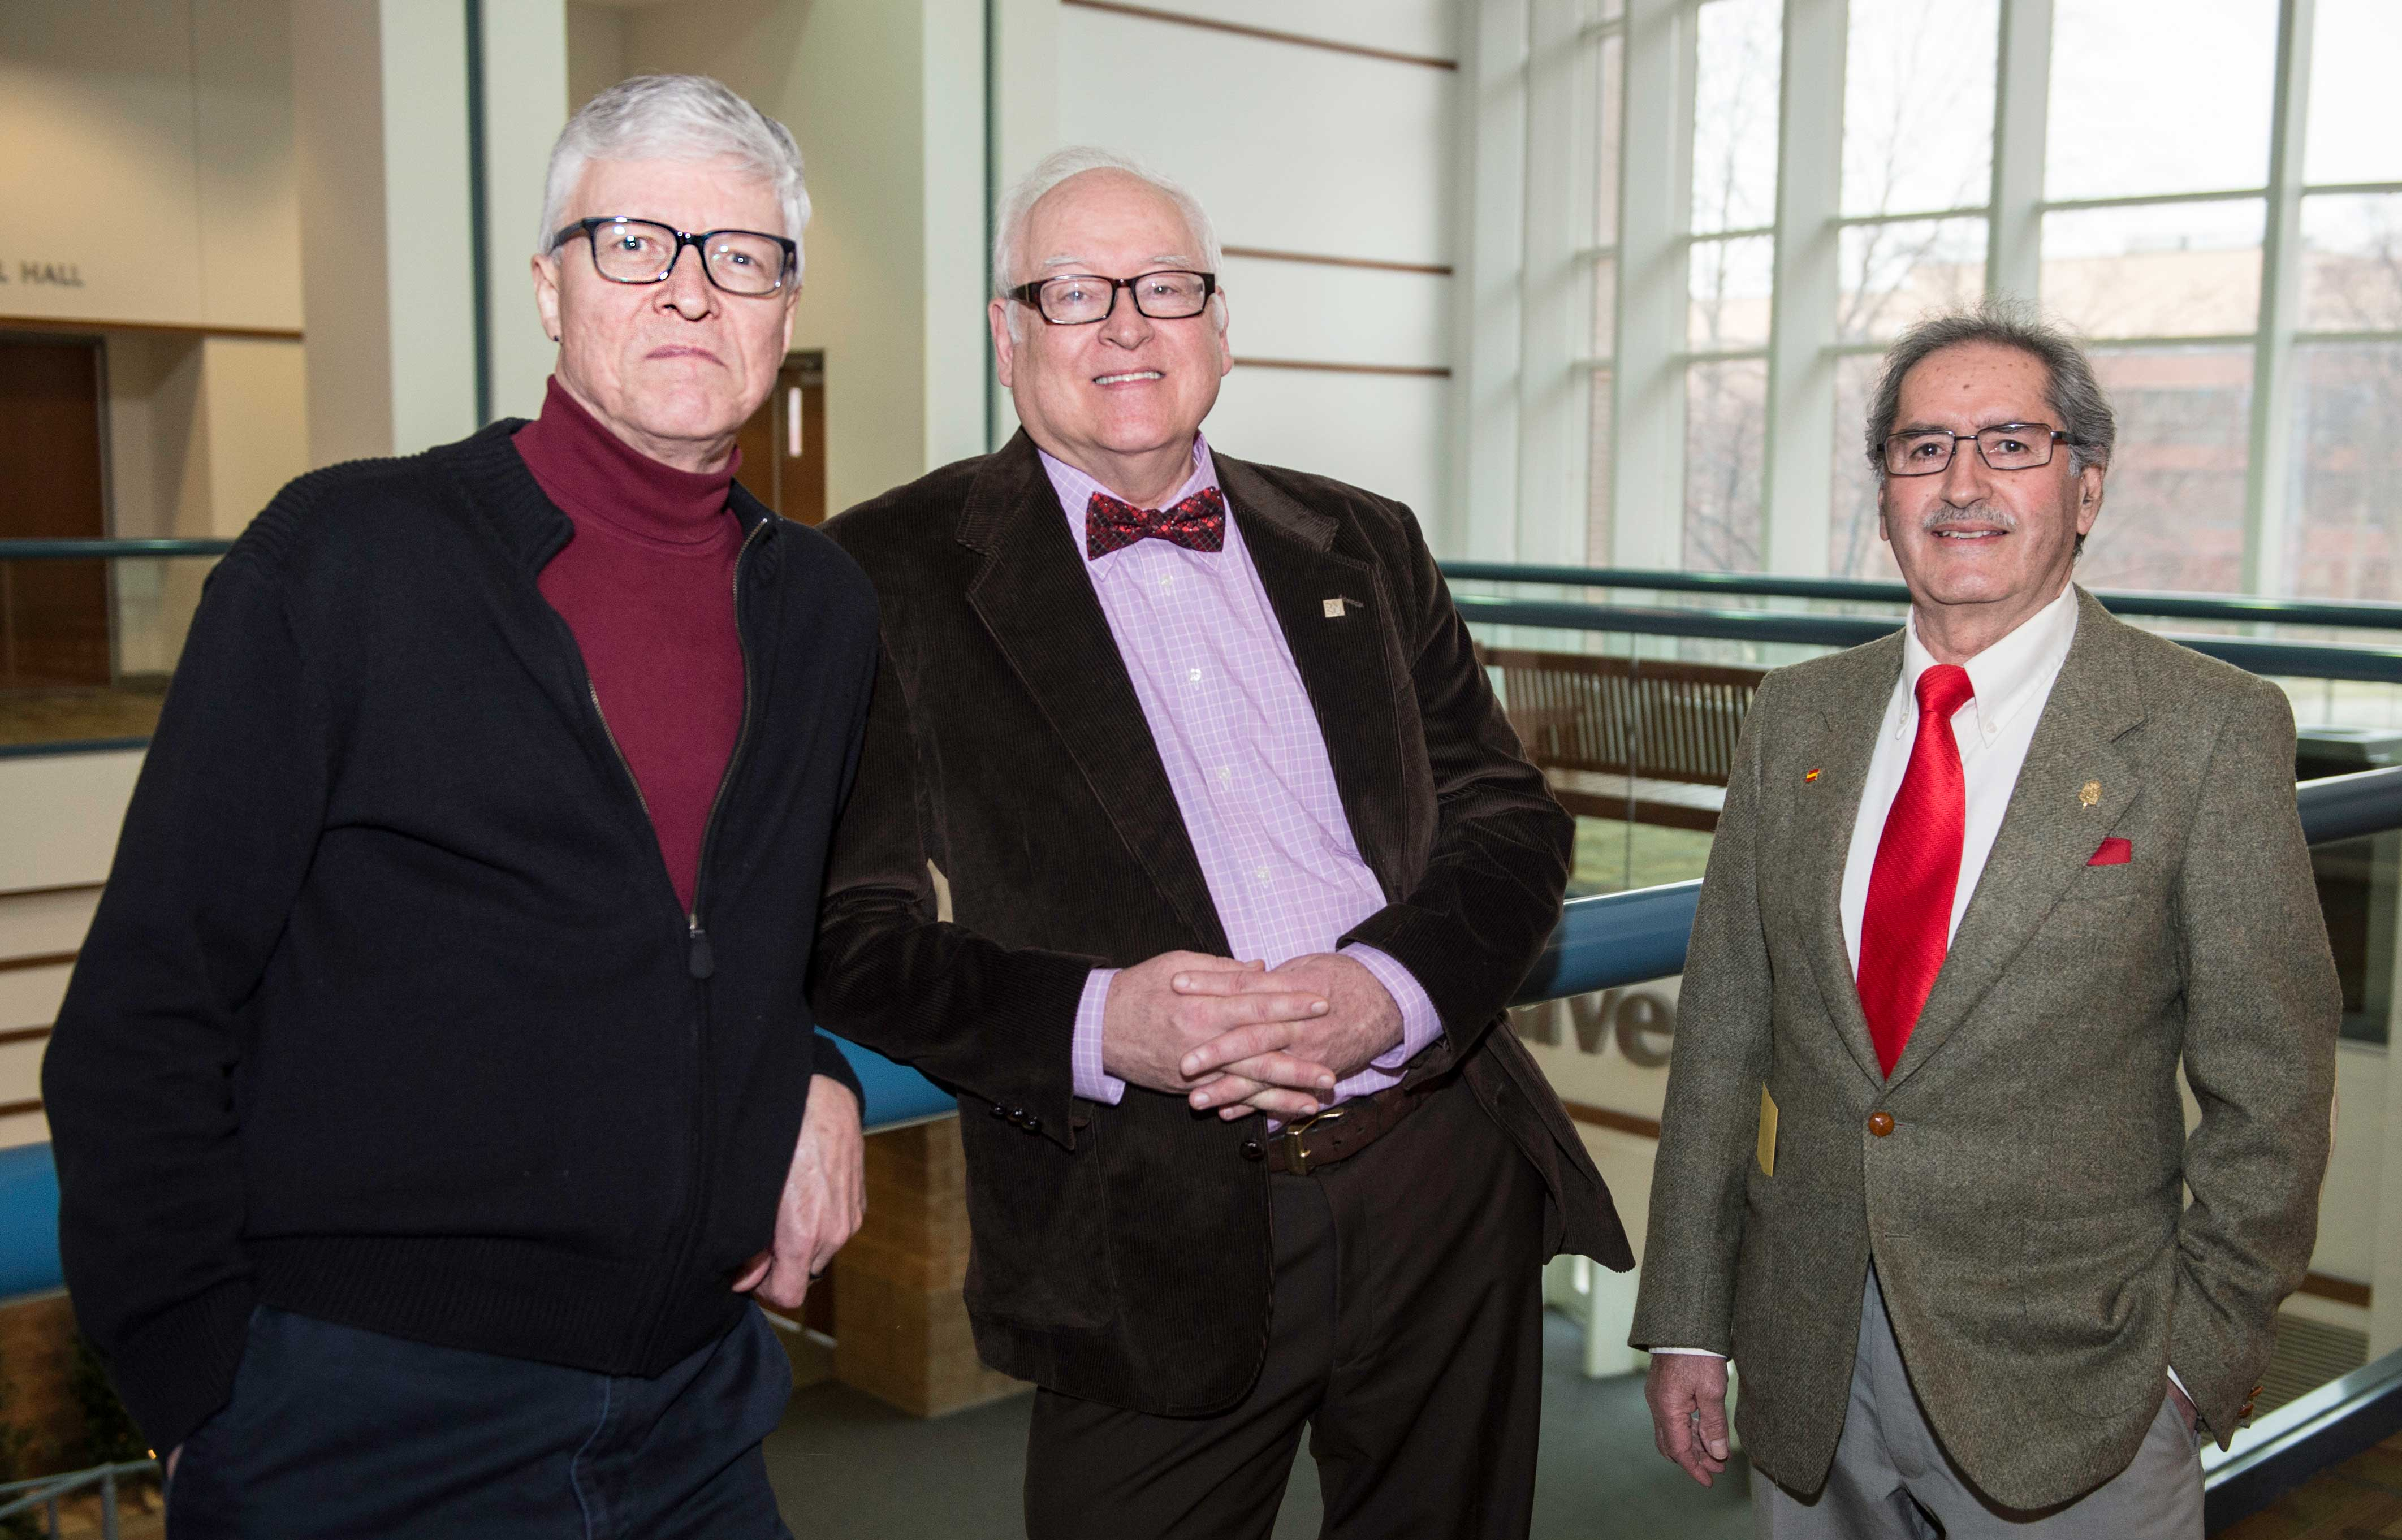 Ricardo Pastor, a professor of modern foreign languages with 41 years at SVSU; Gerald Peterson, a professor of psychology with 37 years at the university; and Paul Munn, a professor of English with 30 years here.